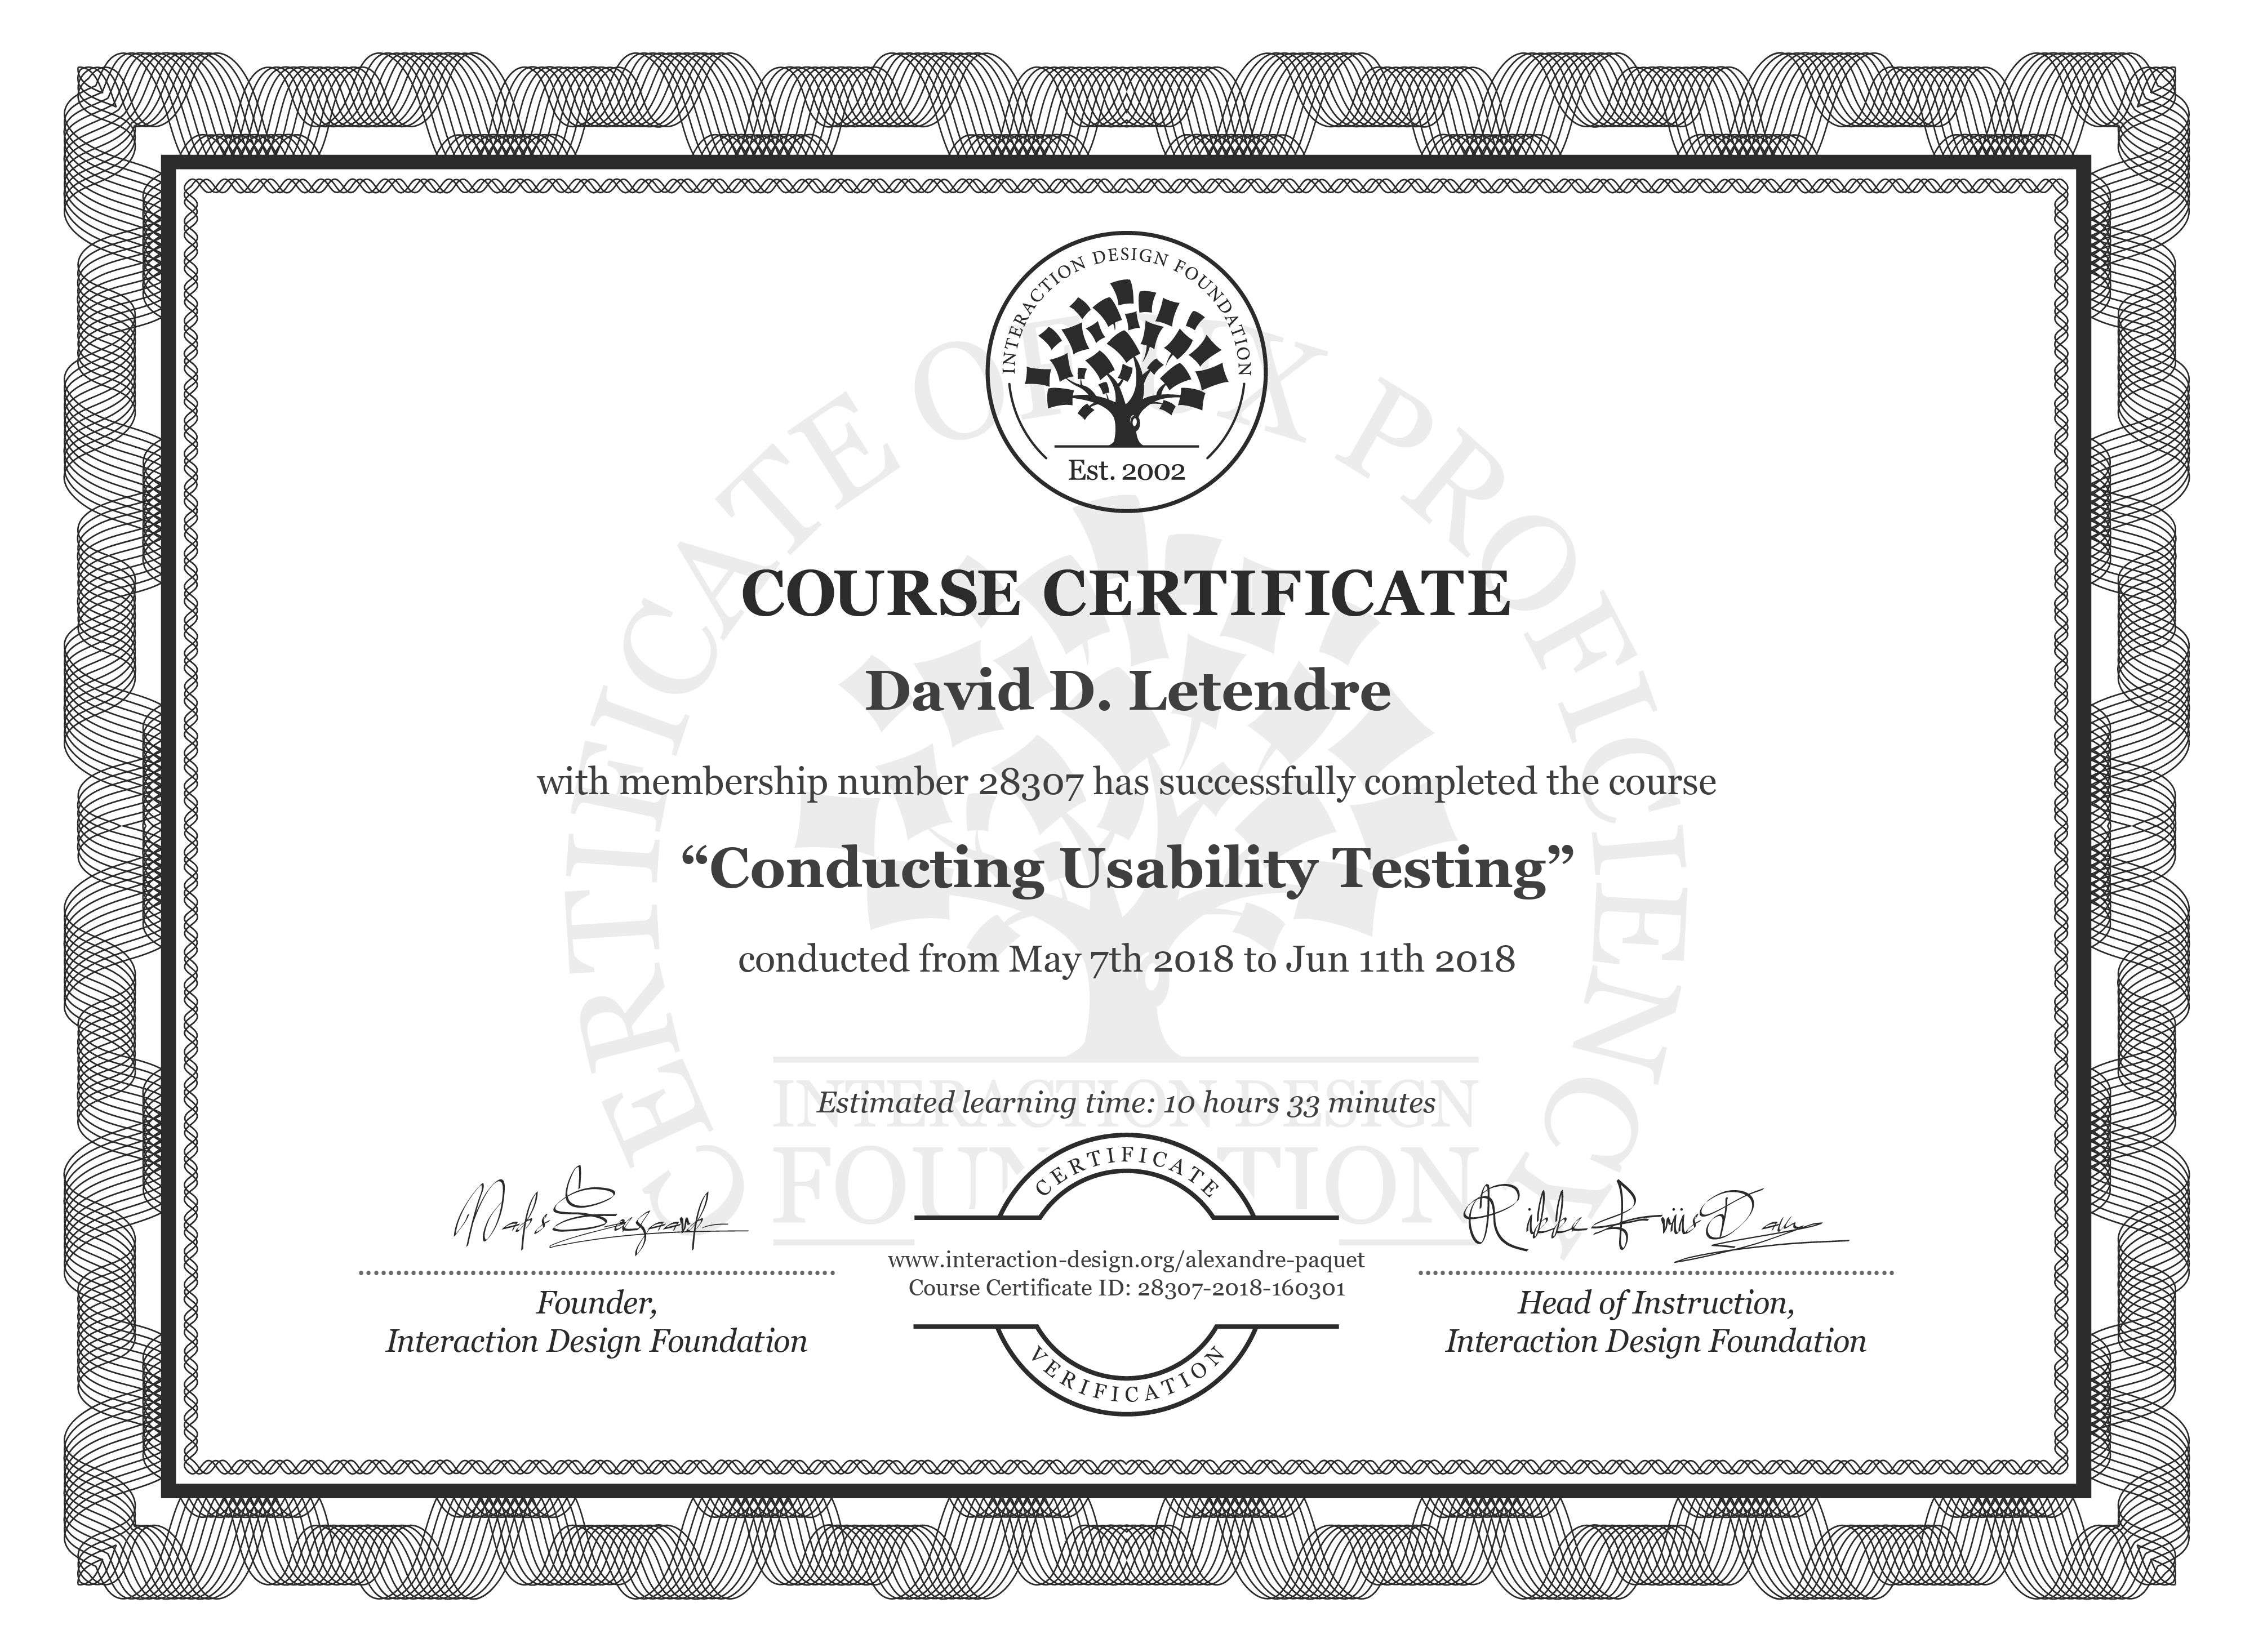 David D. Letendre: Course Certificate - Conducting Usability Testing